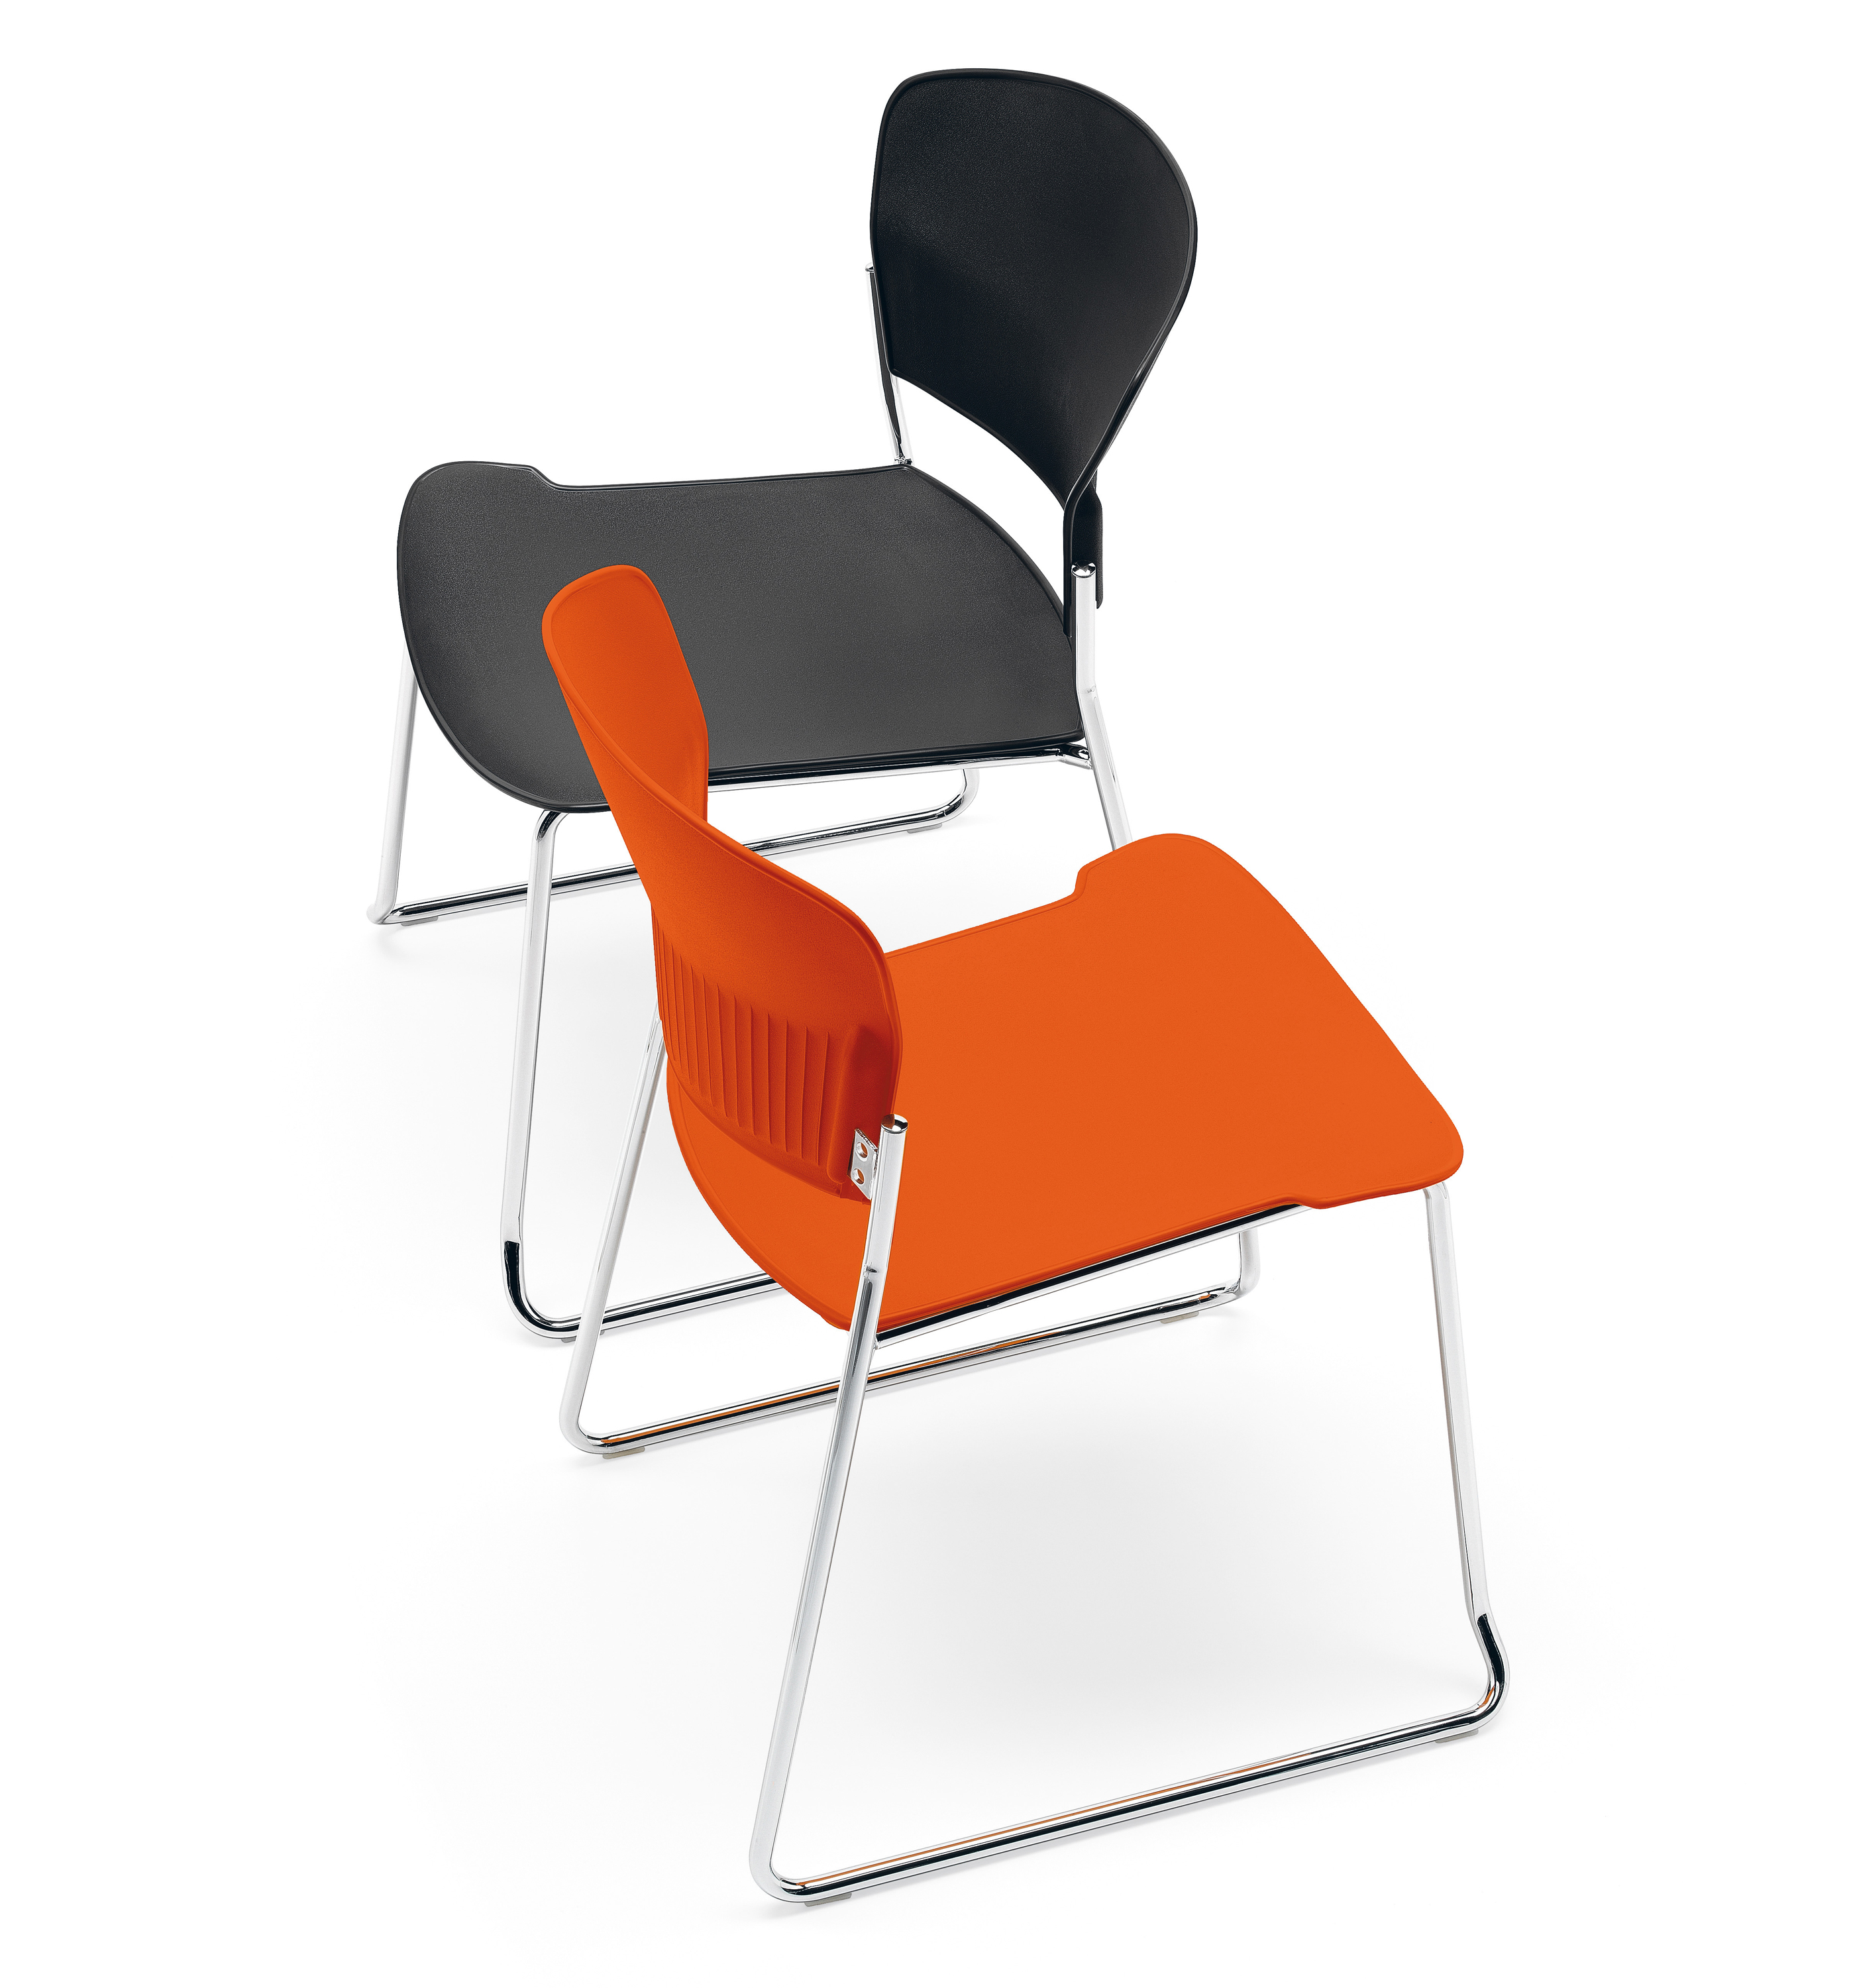 10S_Estel_Comfort&Relax_Office-chair&contract-conference_Cameo